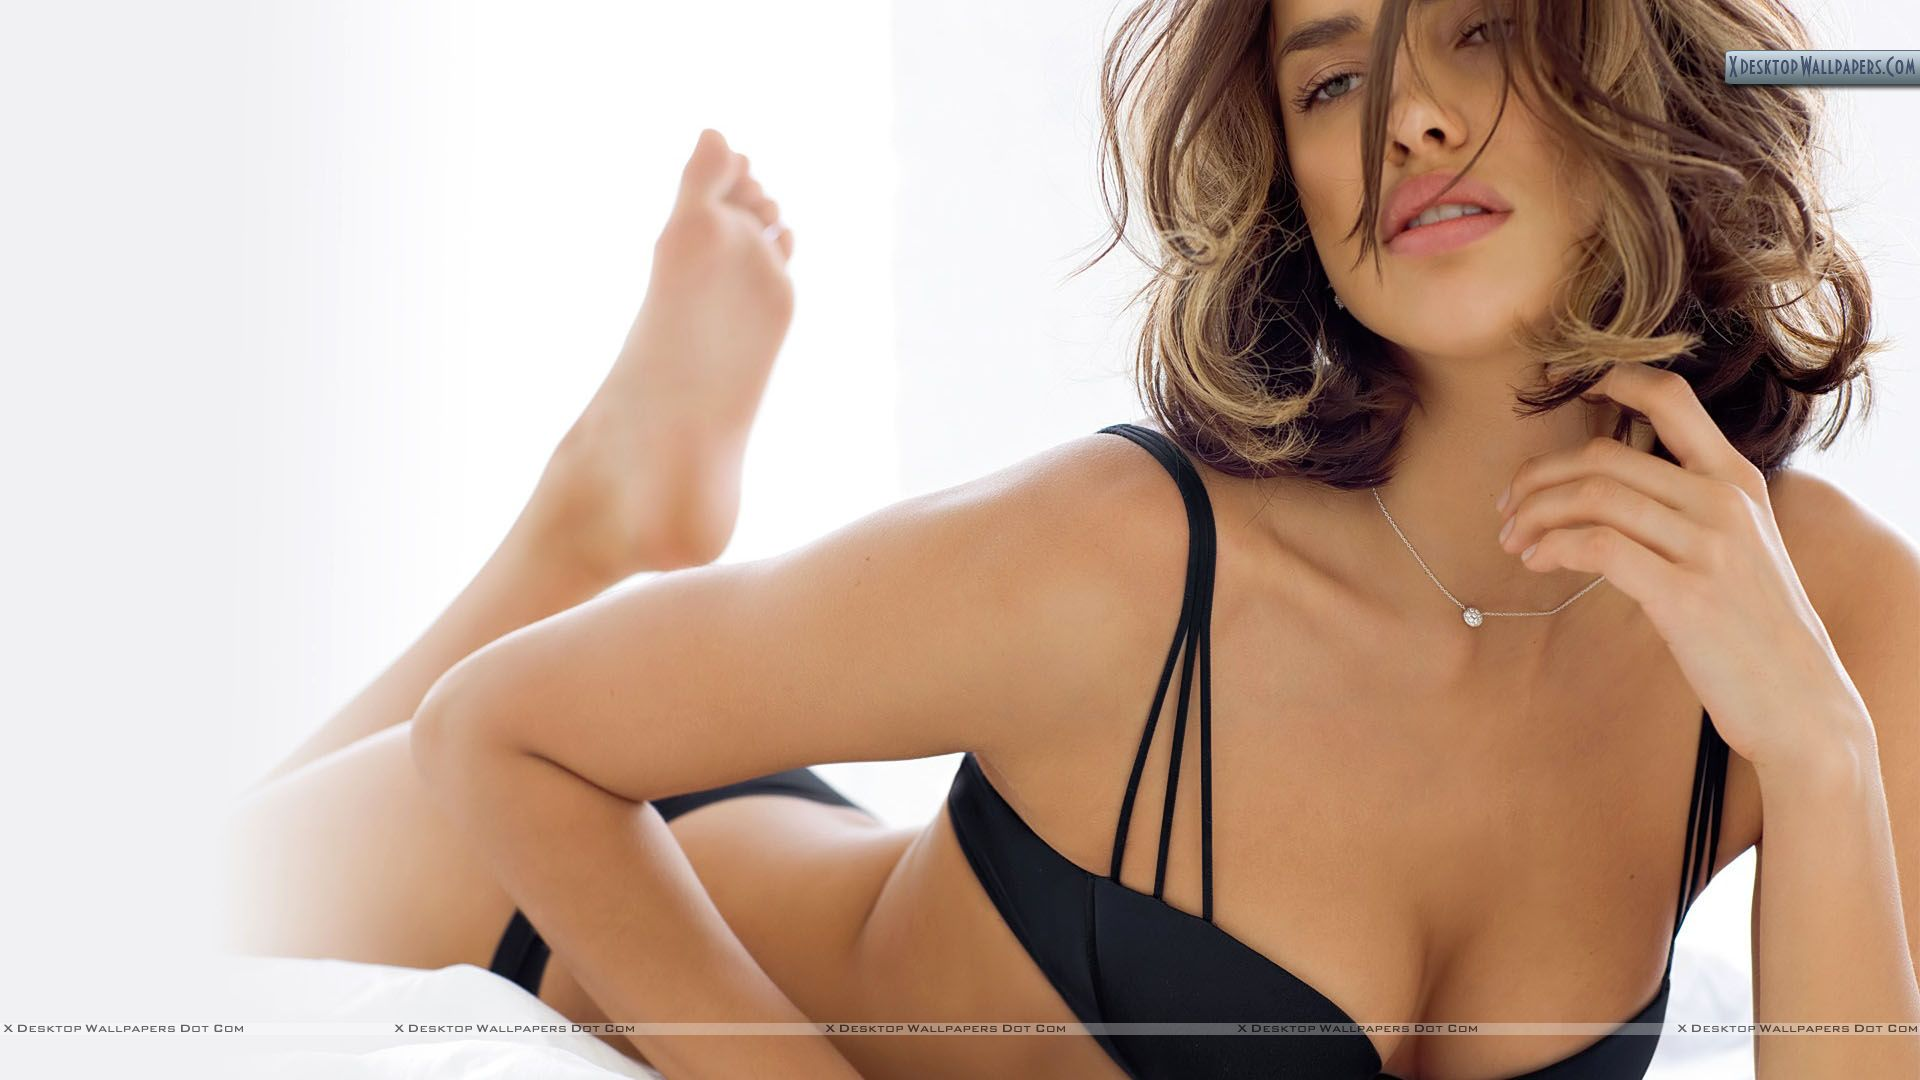 https://i2.wp.com/xdesktopwallpapers.com/wp-content/uploads/2011/02/Irina-Shayk-Pink-Lips-Laying-on-Bed.jpg